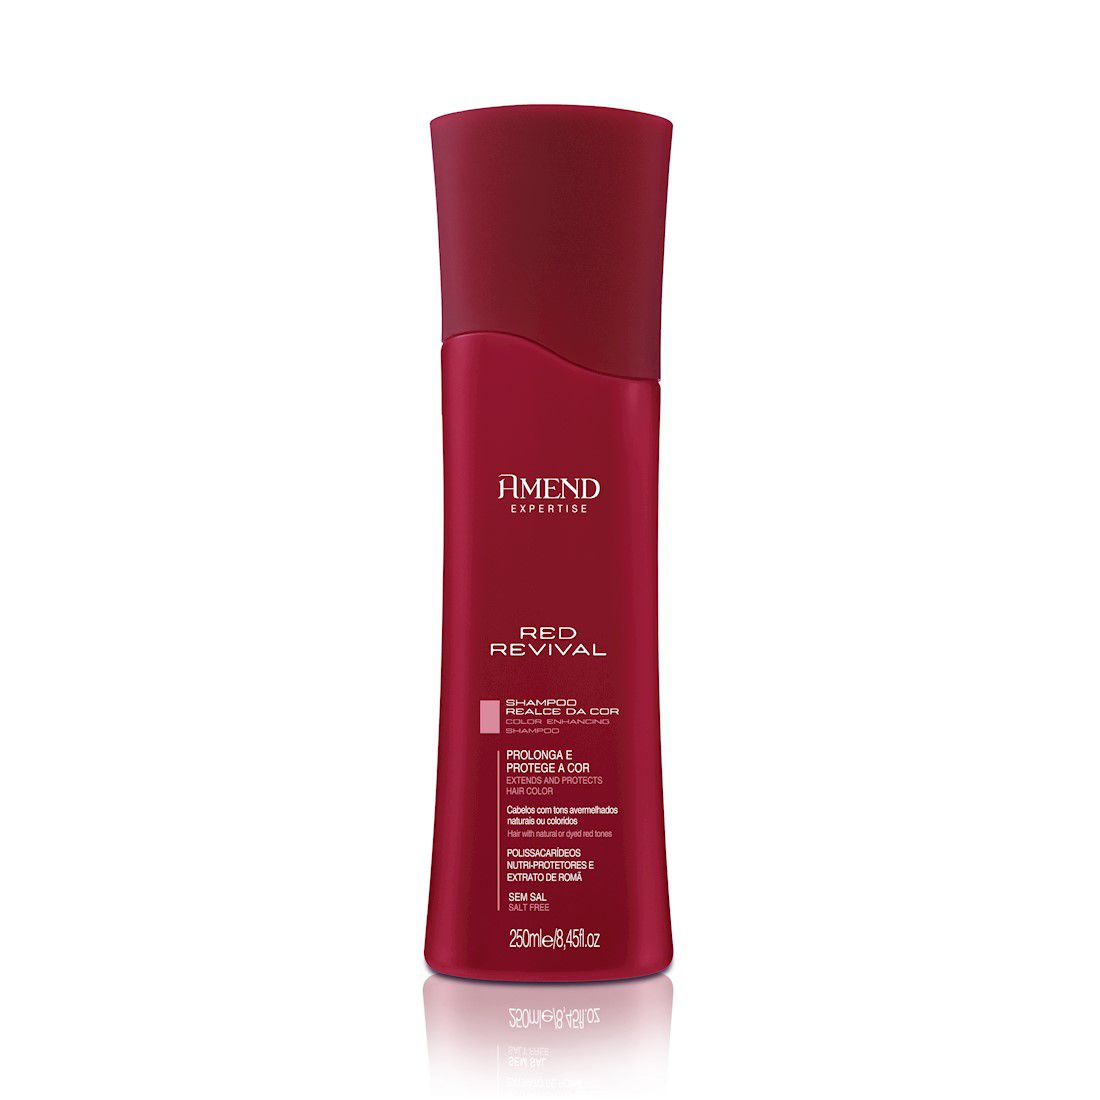 Amend Shampoo Treatment Expertise Red Revival 250mL